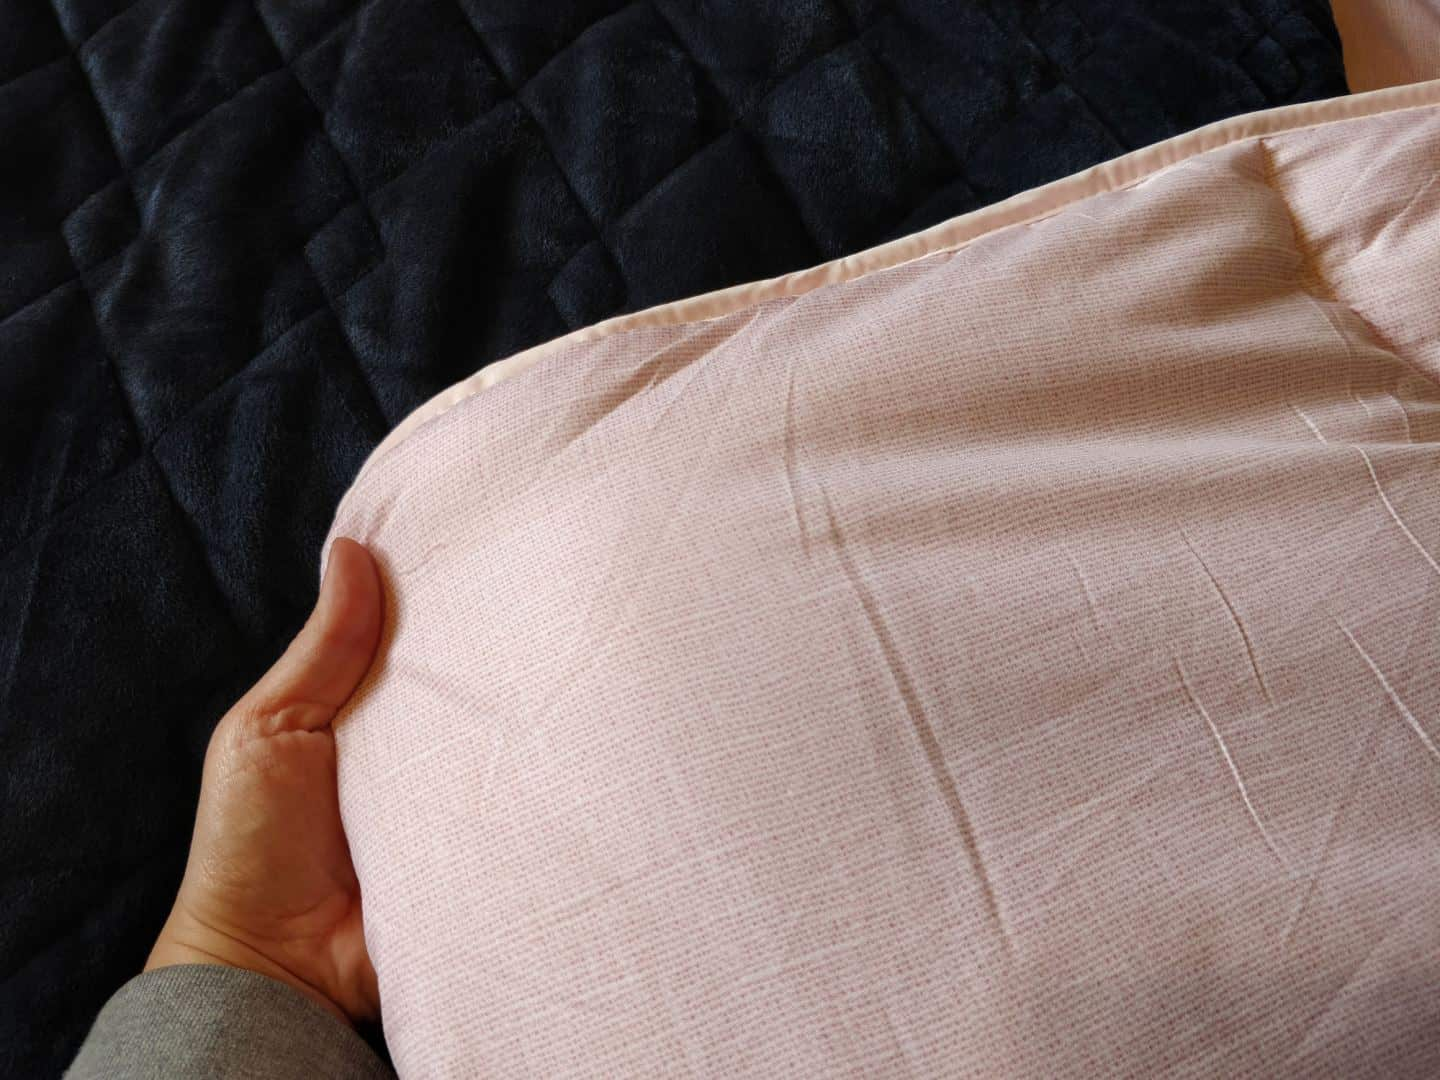 World Sleep Day 2020-5 Ways to Improve your Sleep. A coverless pink duvet and navy blue weighted blanket on a bed